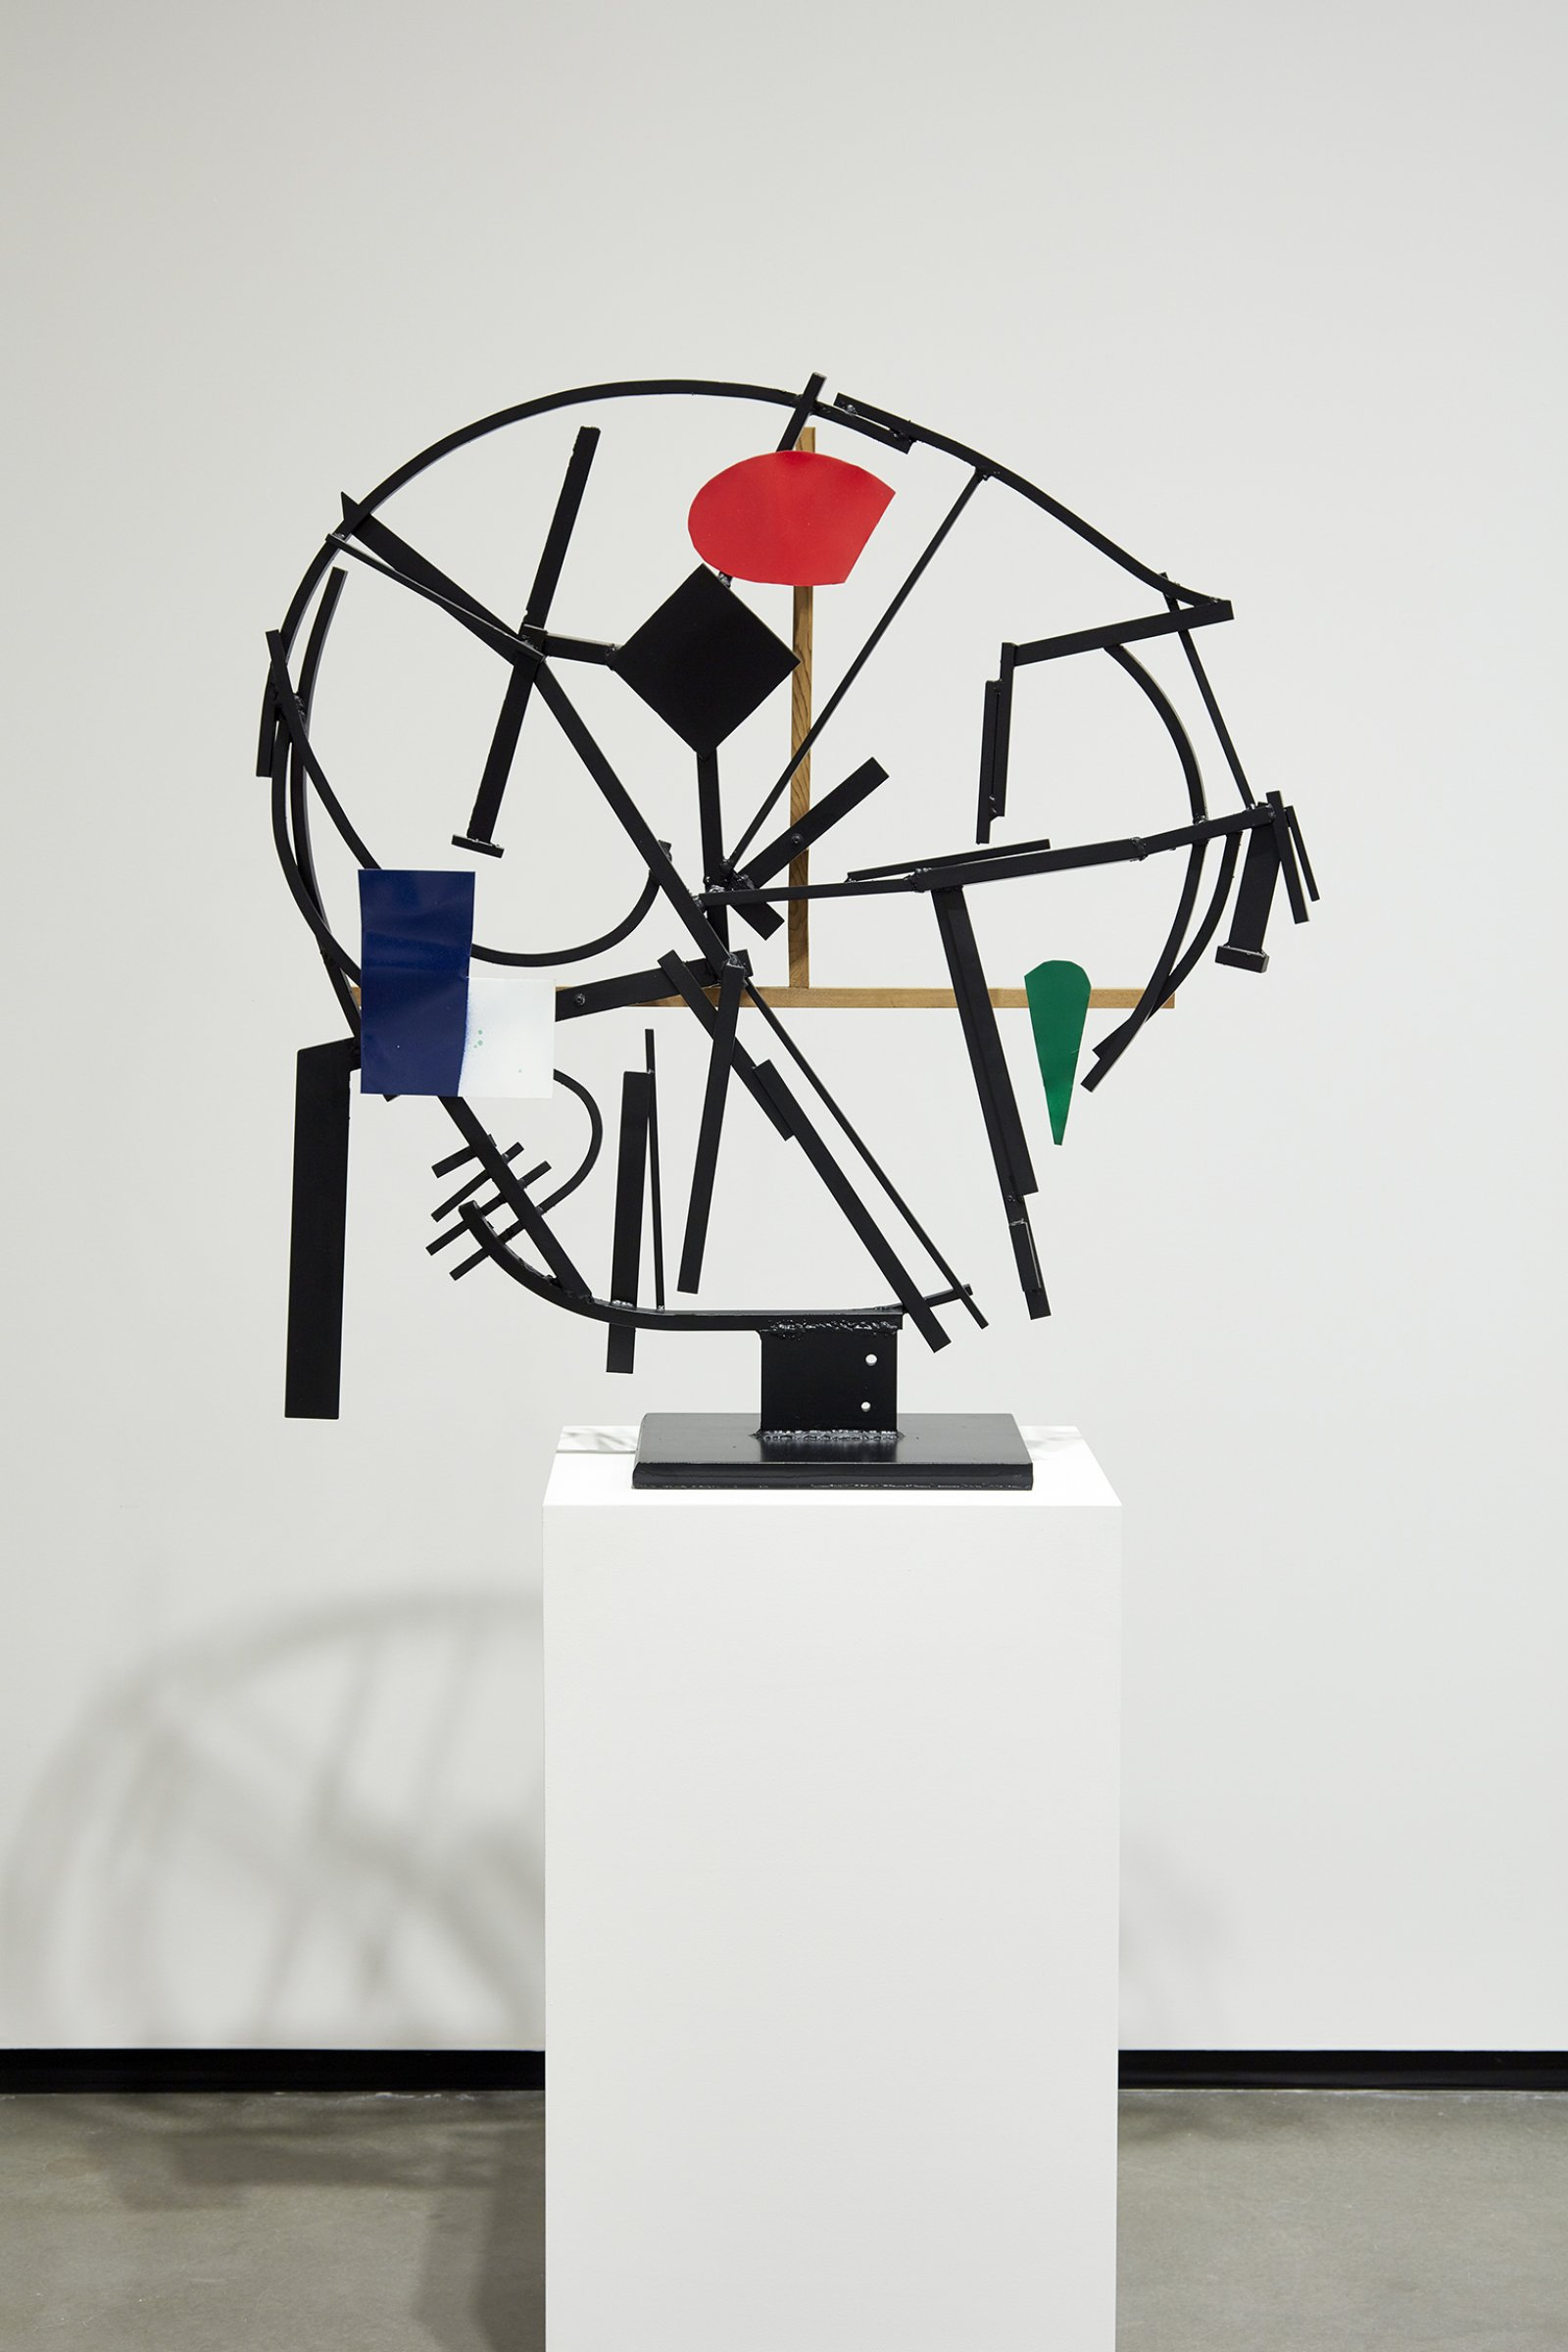 Damian Moppett, Timeless Clock Abstraction, 2013, paint, steel, wood, 73 x 39 x 18 in. (186 x 99 x 46 cm). Installation view, Every Story Has Two Sides, Art Gallery of Alberta, Edmonton, 2016 by Damian Moppett